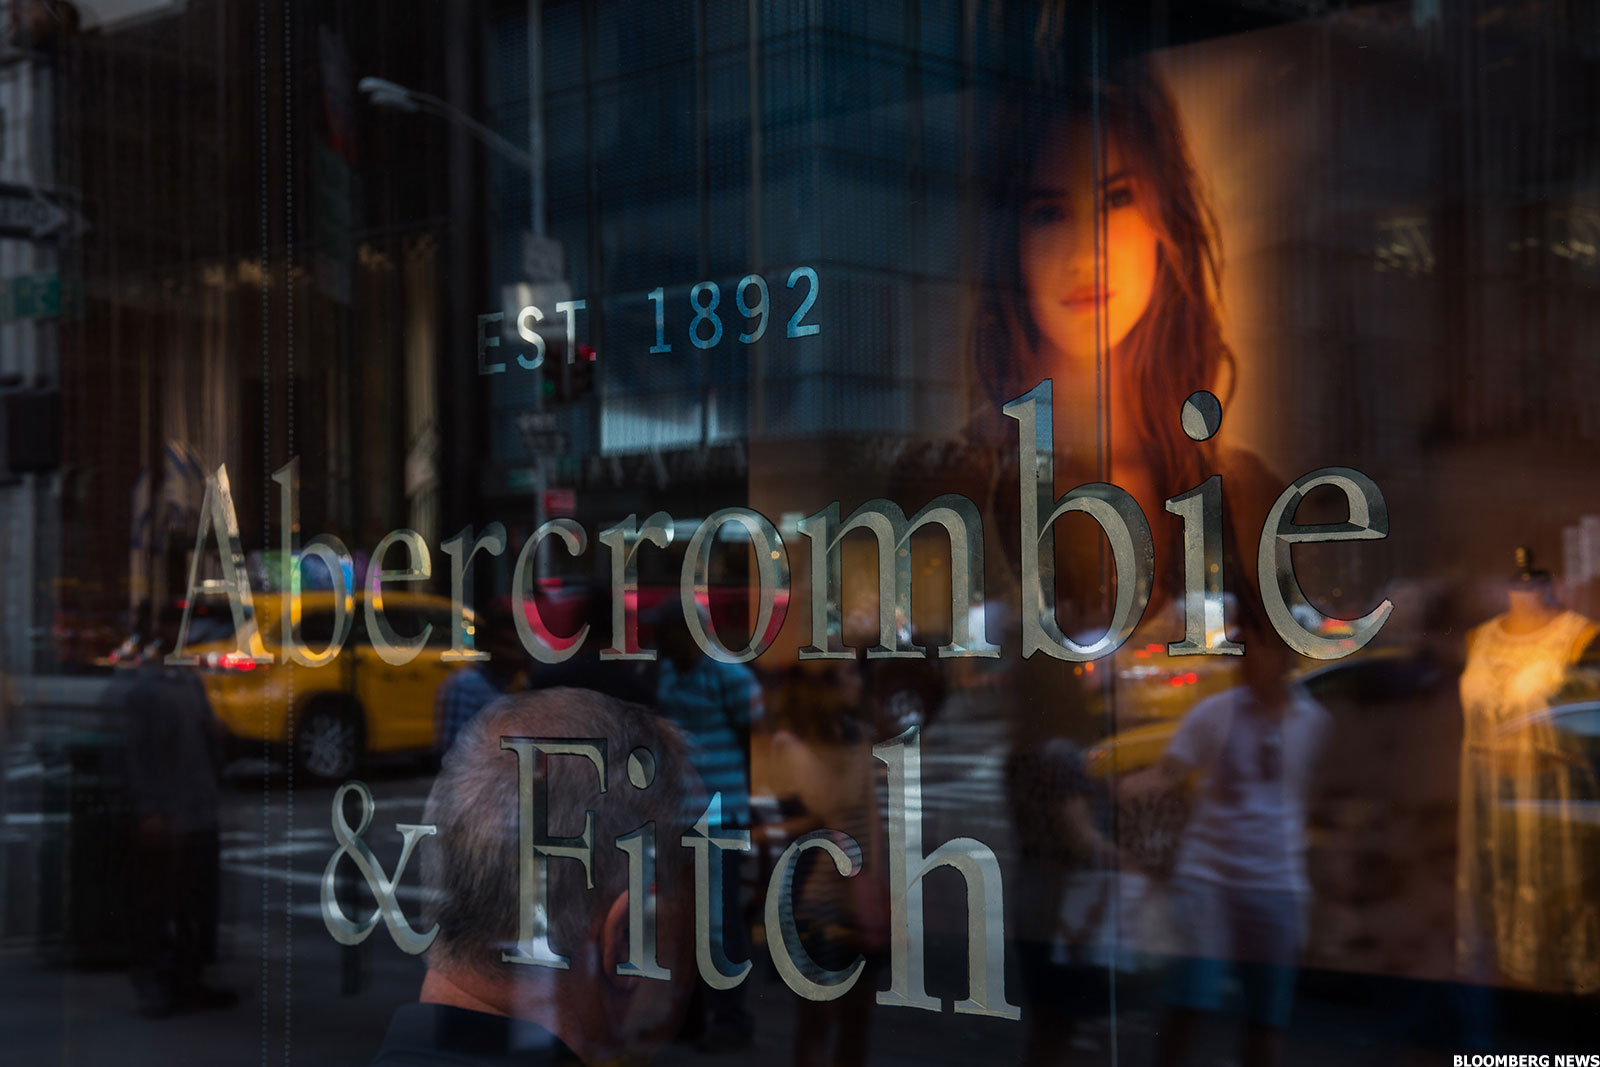 Abercrombie & Fitch (ANF) Stock Plunges on Q2 Loss - TheStreet